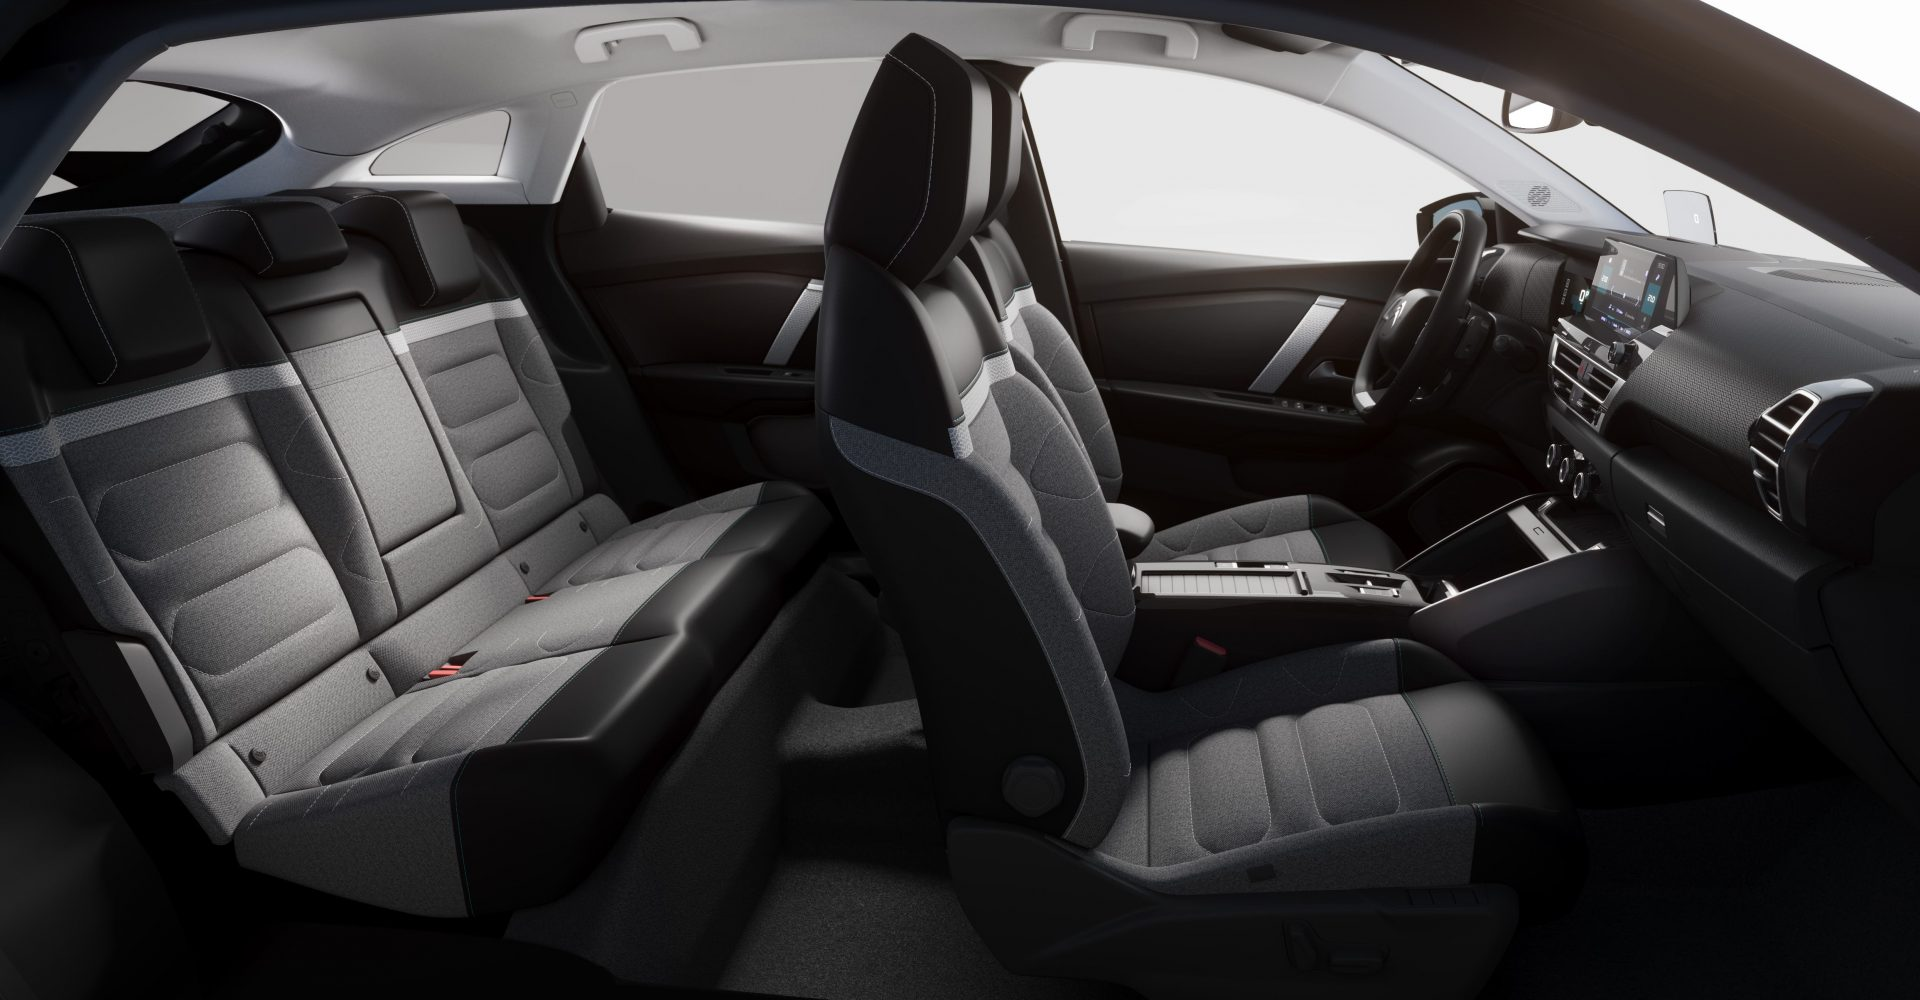 Comfort one of key considerations in new car purchase, survey finds